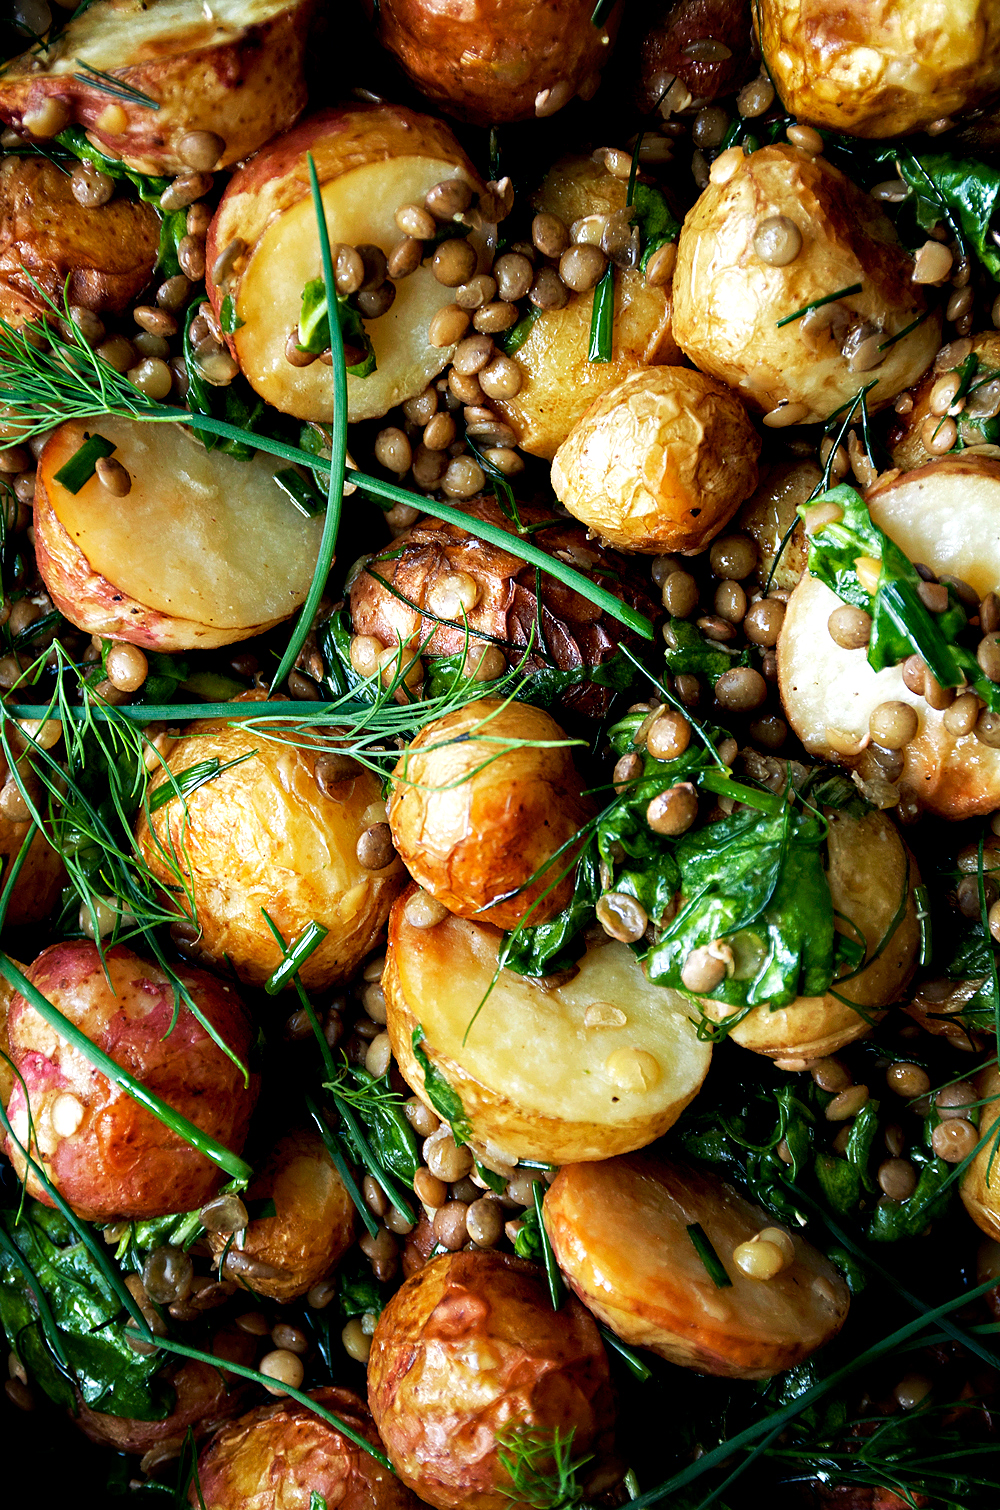 Roasted New Potato Salad with Lentils | occasionallyeggs.com